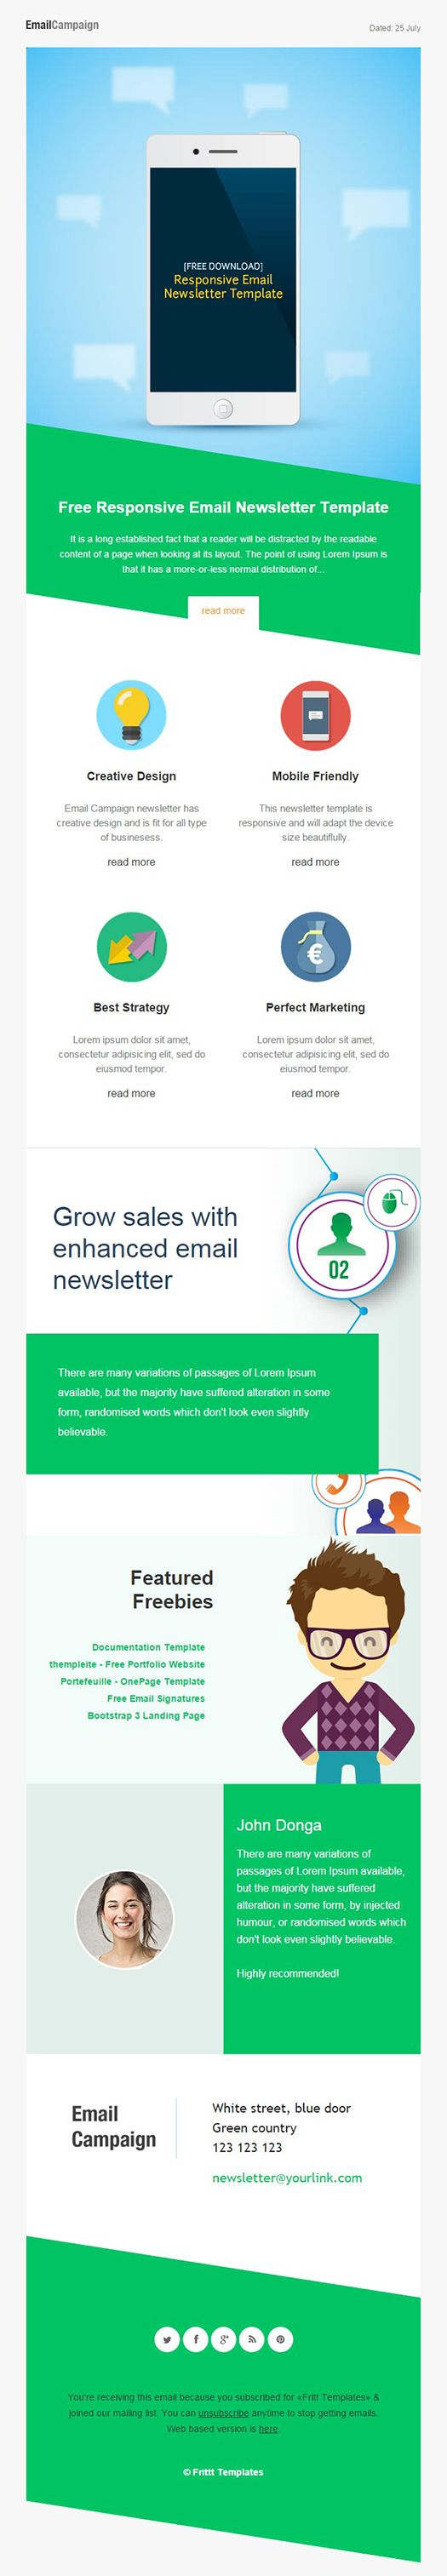 40 best images about Email Template on Pinterest